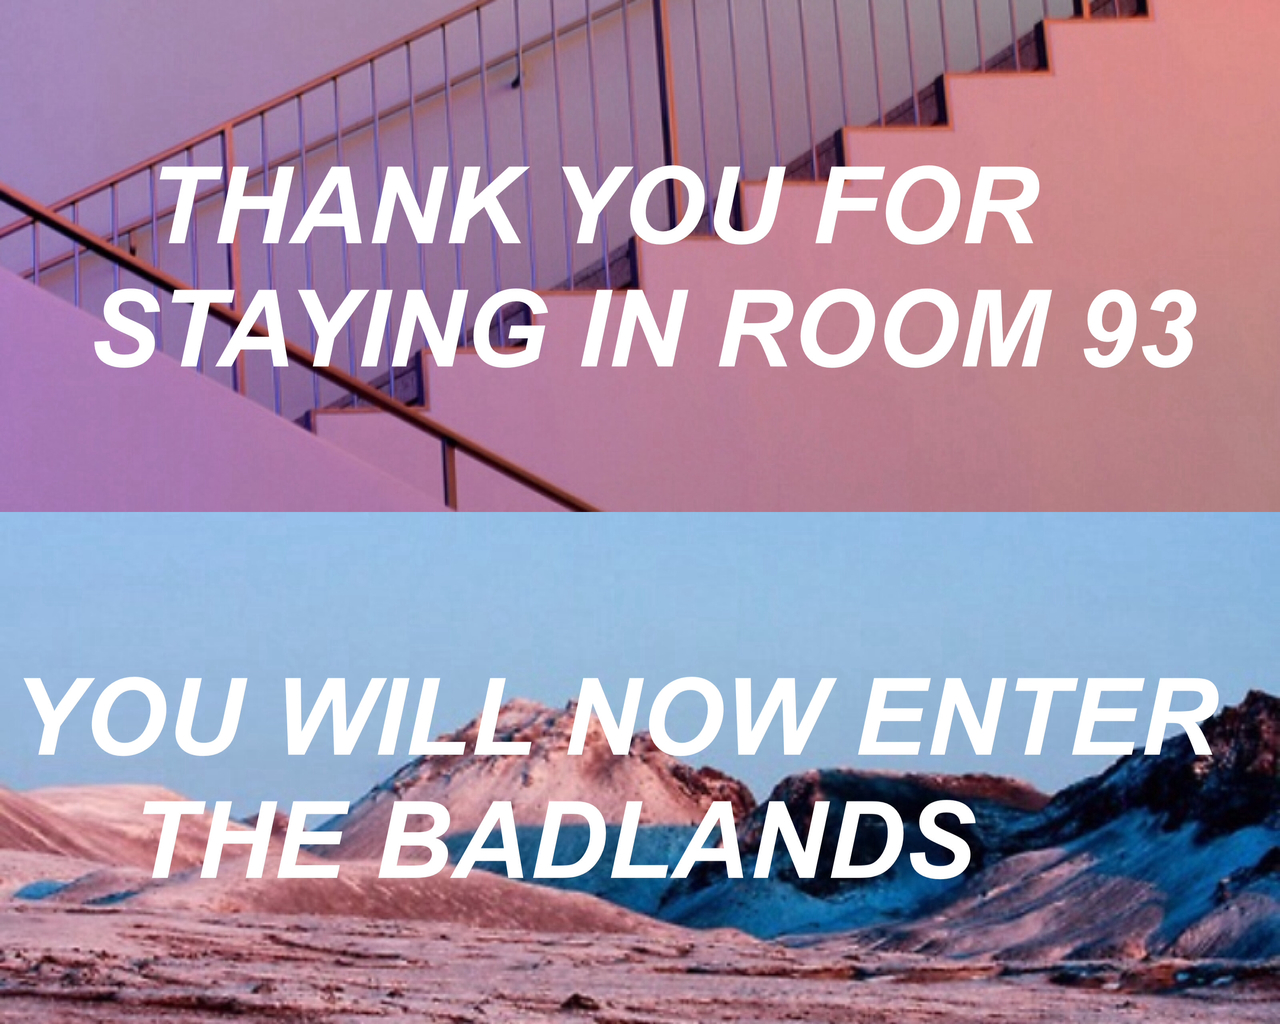 thank you for staying in room 93. you will now enter the badlands ...